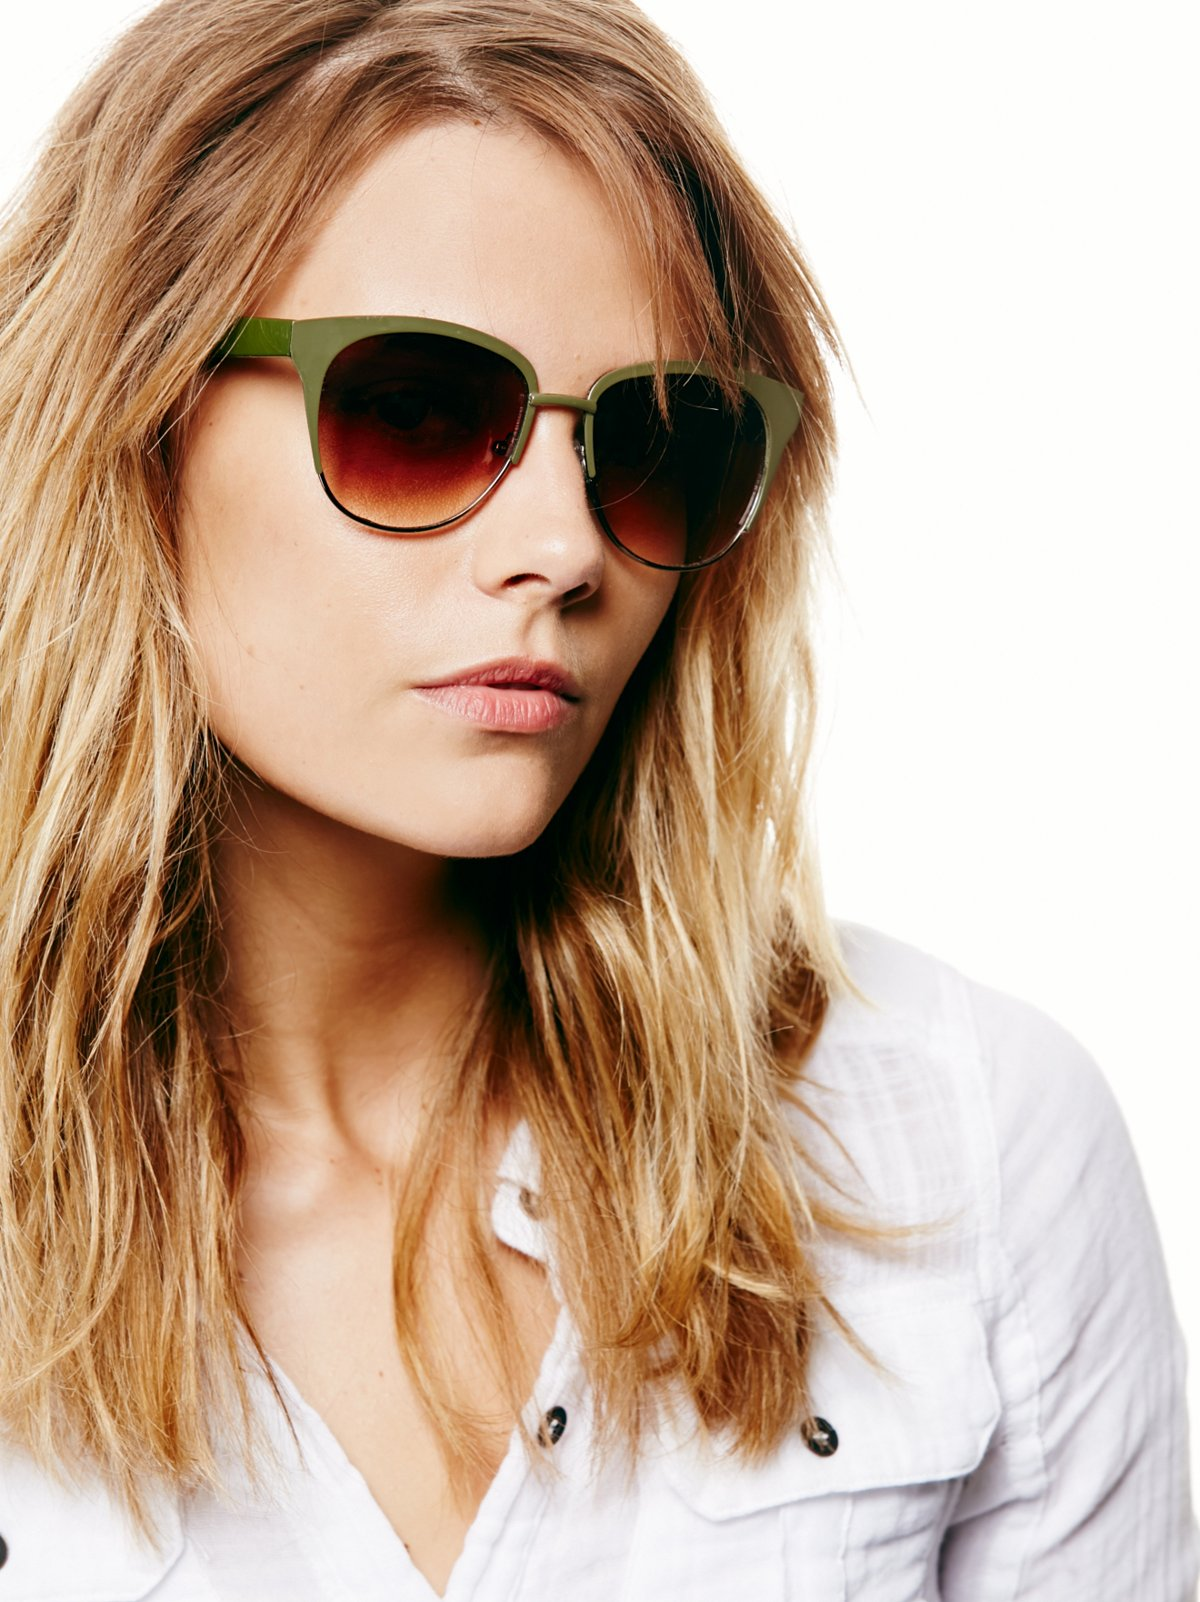 Island Girl Sunglasses